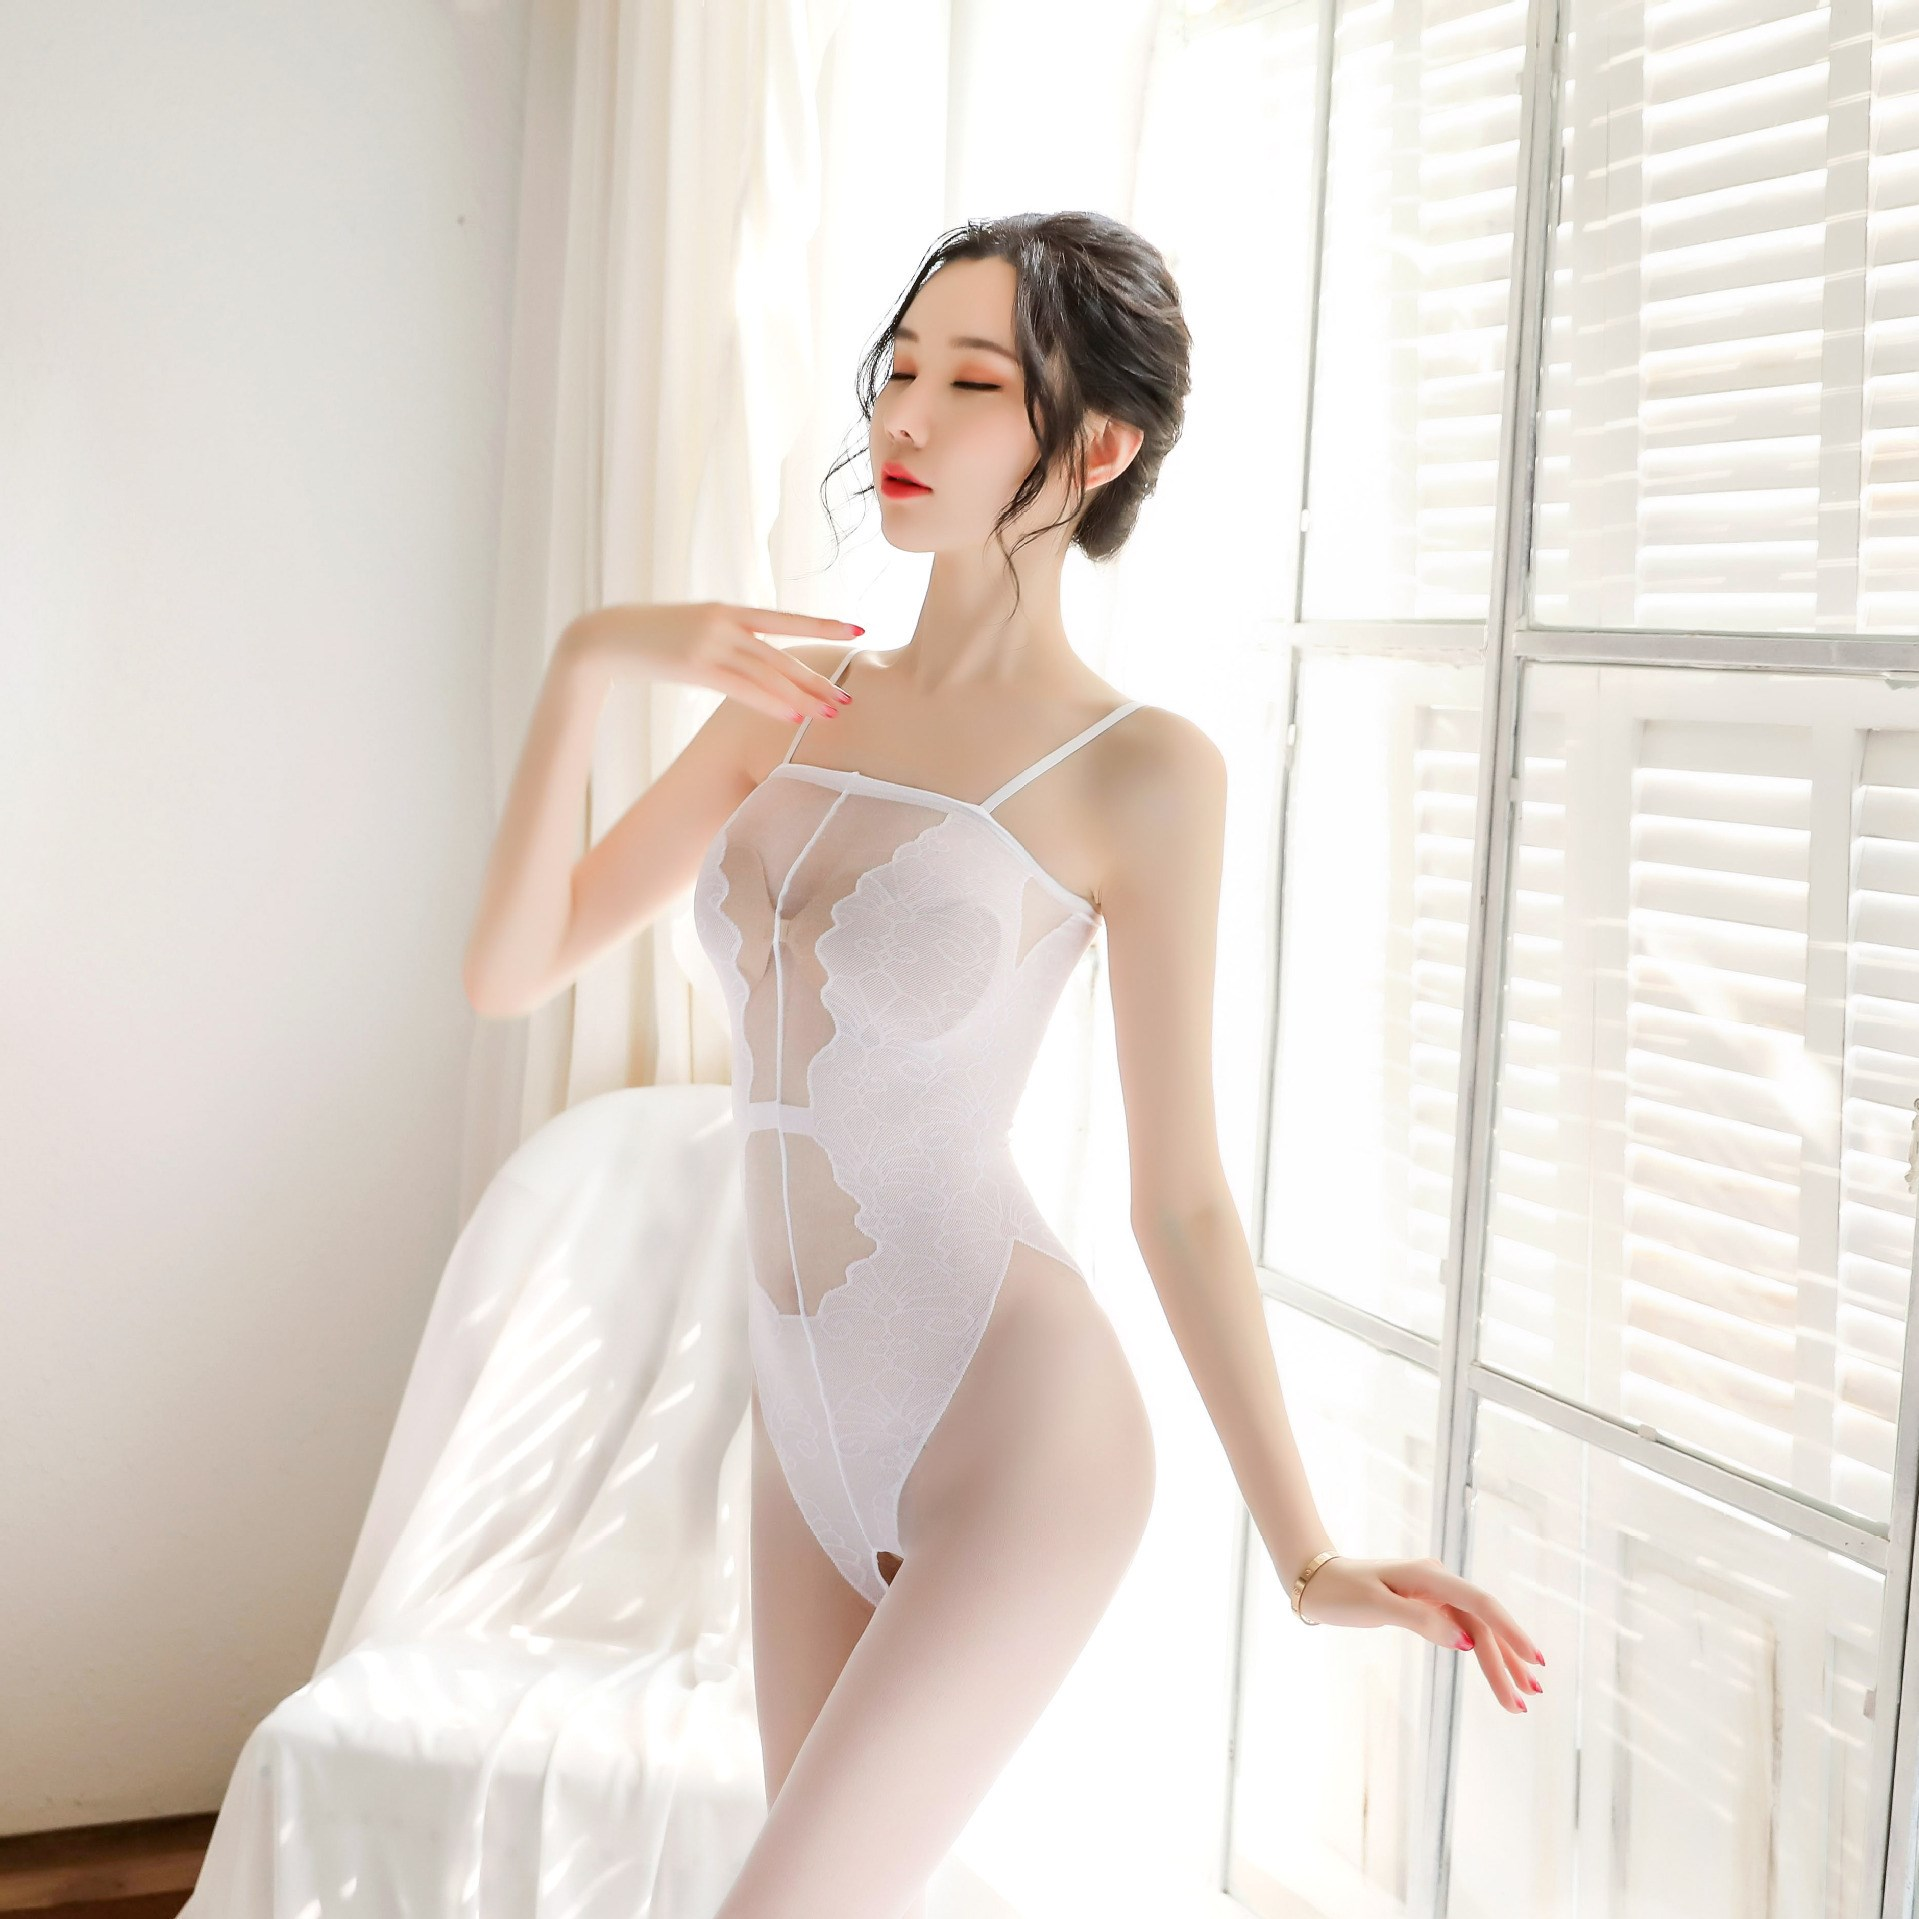 Sexy underwear European and American popular small breast women lace suspender stockings suit